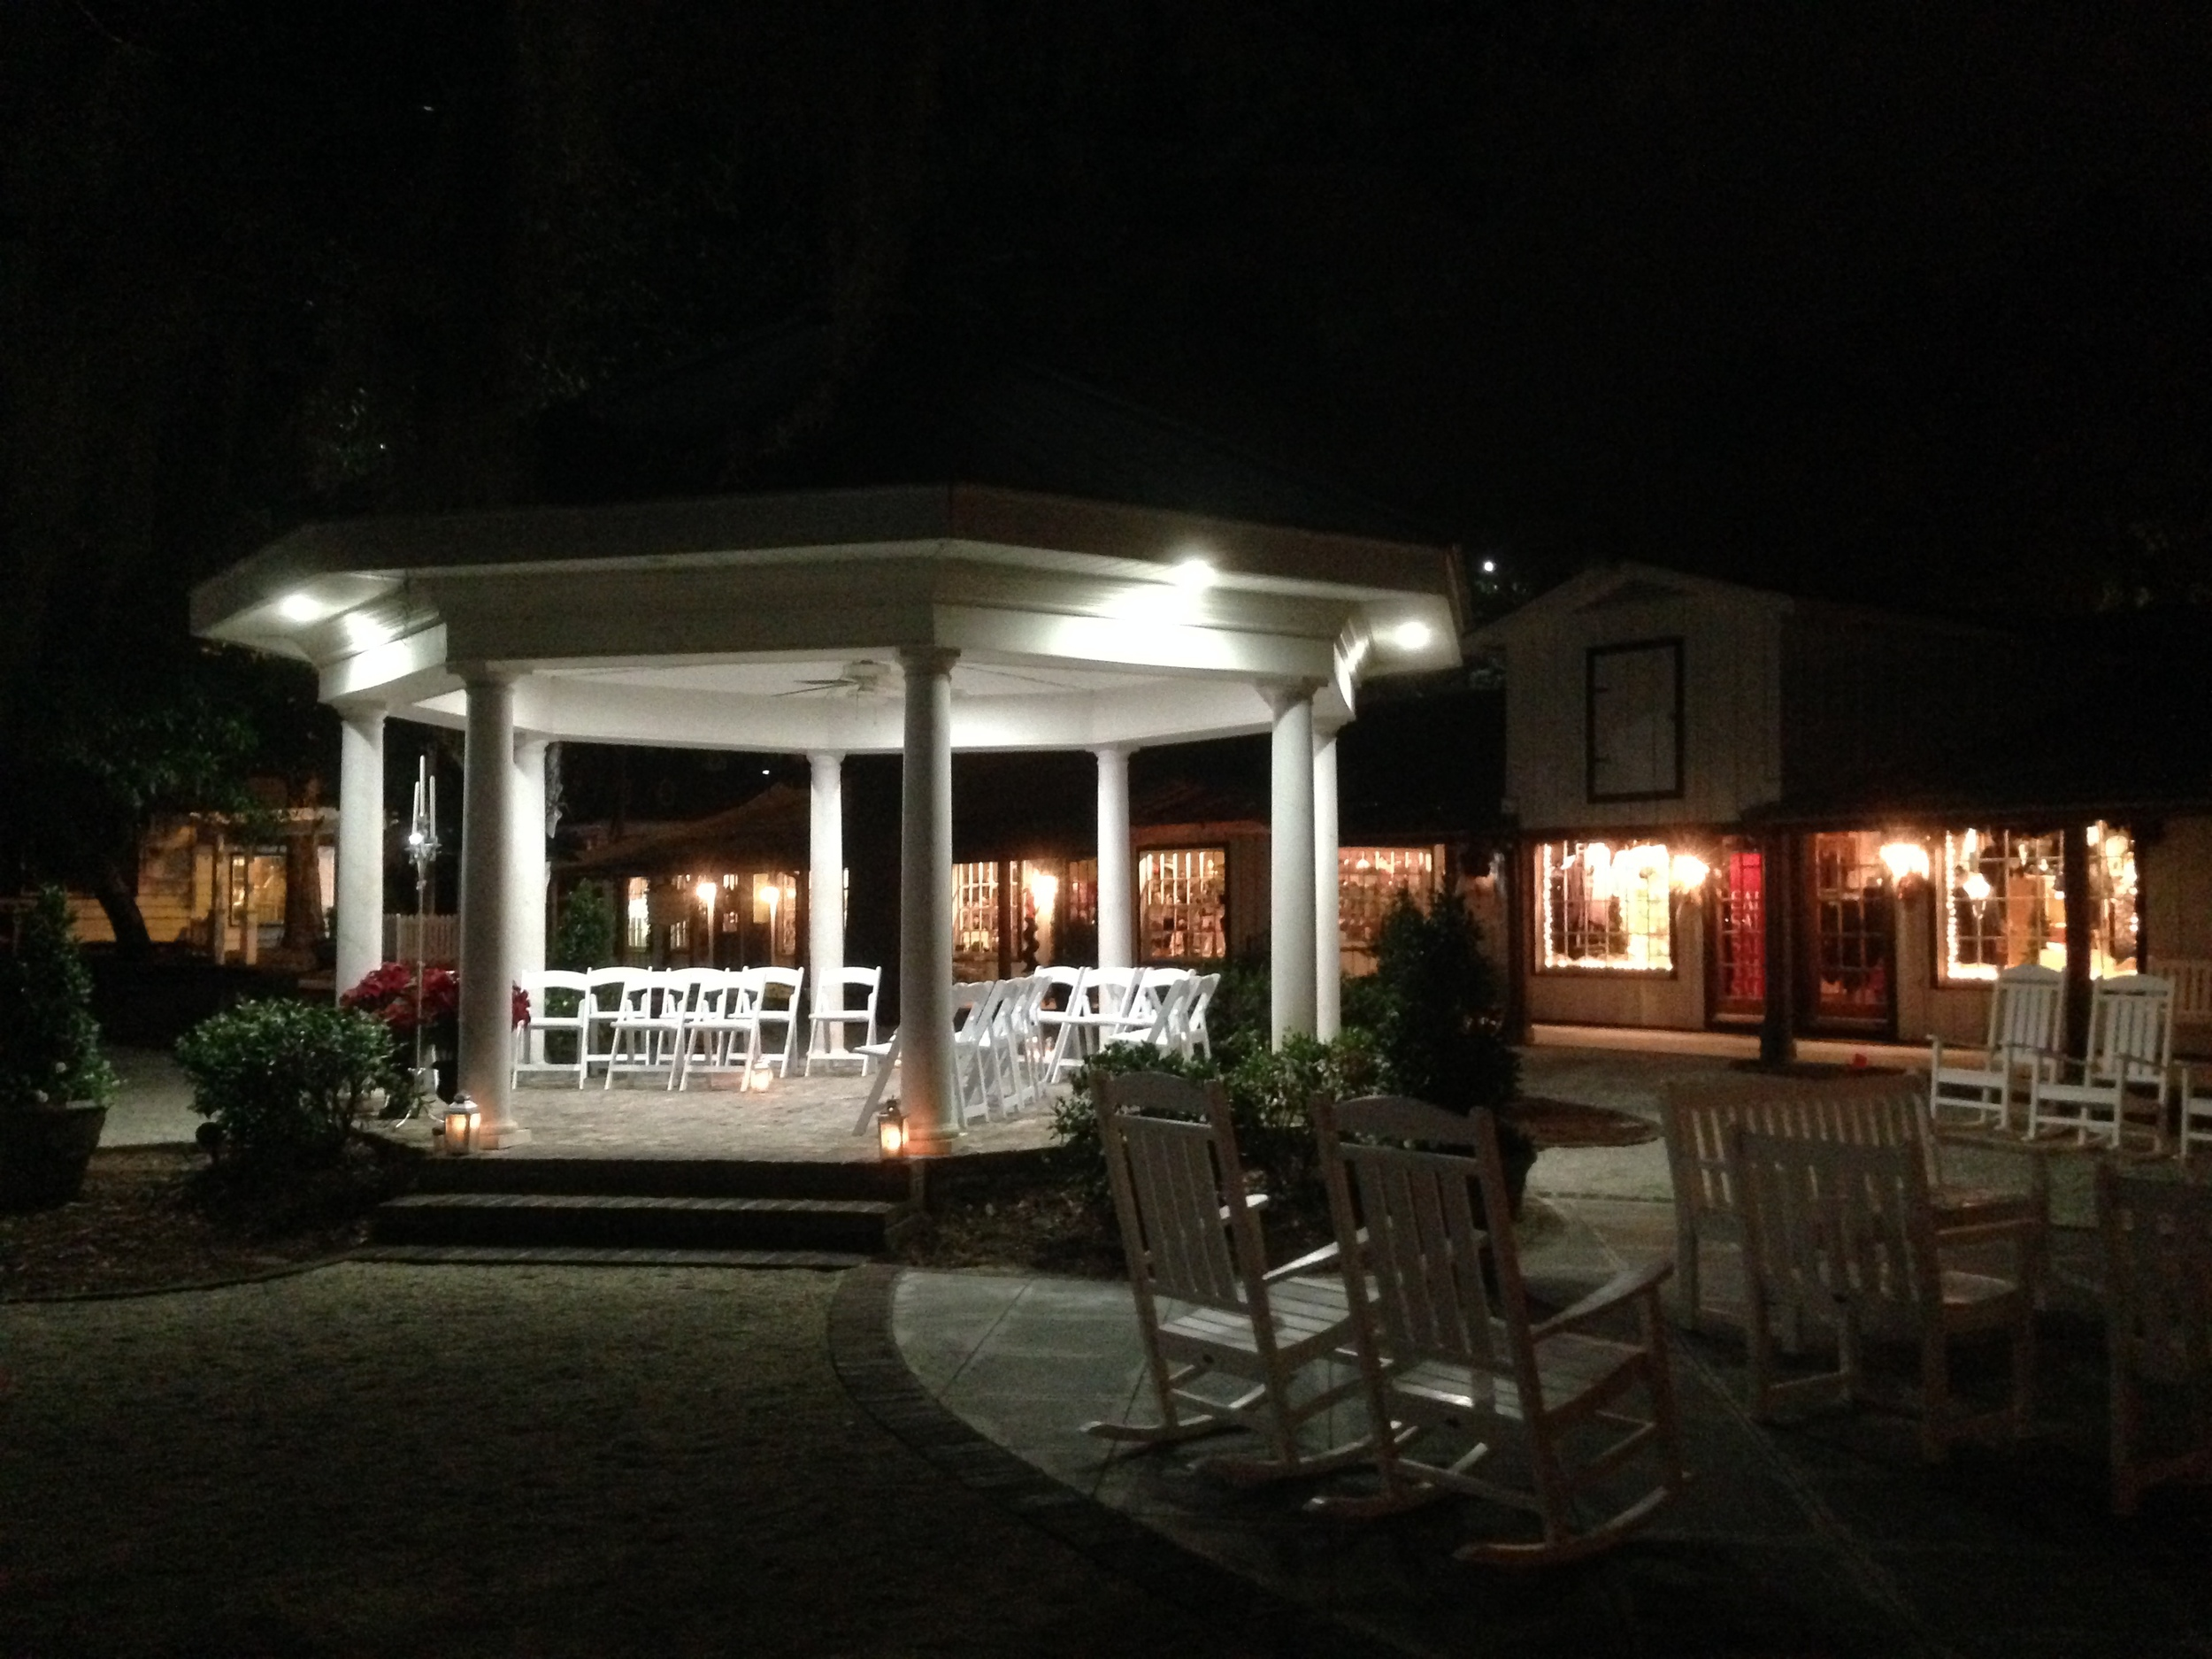 Gazebo at Nosh's Restaurant, Pawley's Island, SC. I took this as I was leaving after the wedding.